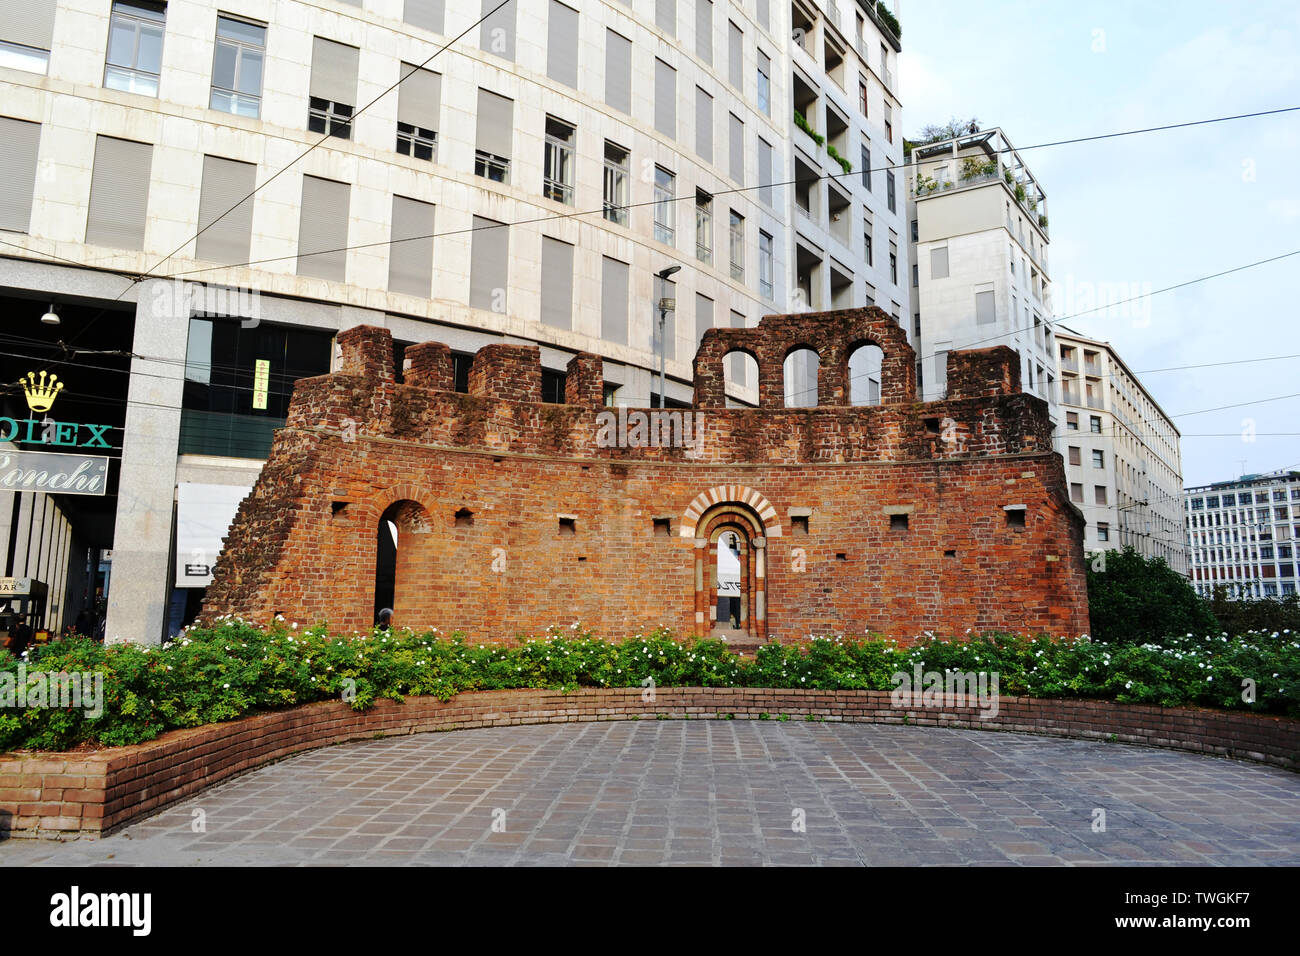 Milan/Italy - October 10, 2015: Red brick wall remained from the medieval cathedral San Giovanni in Conca in Milan. - Stock Image